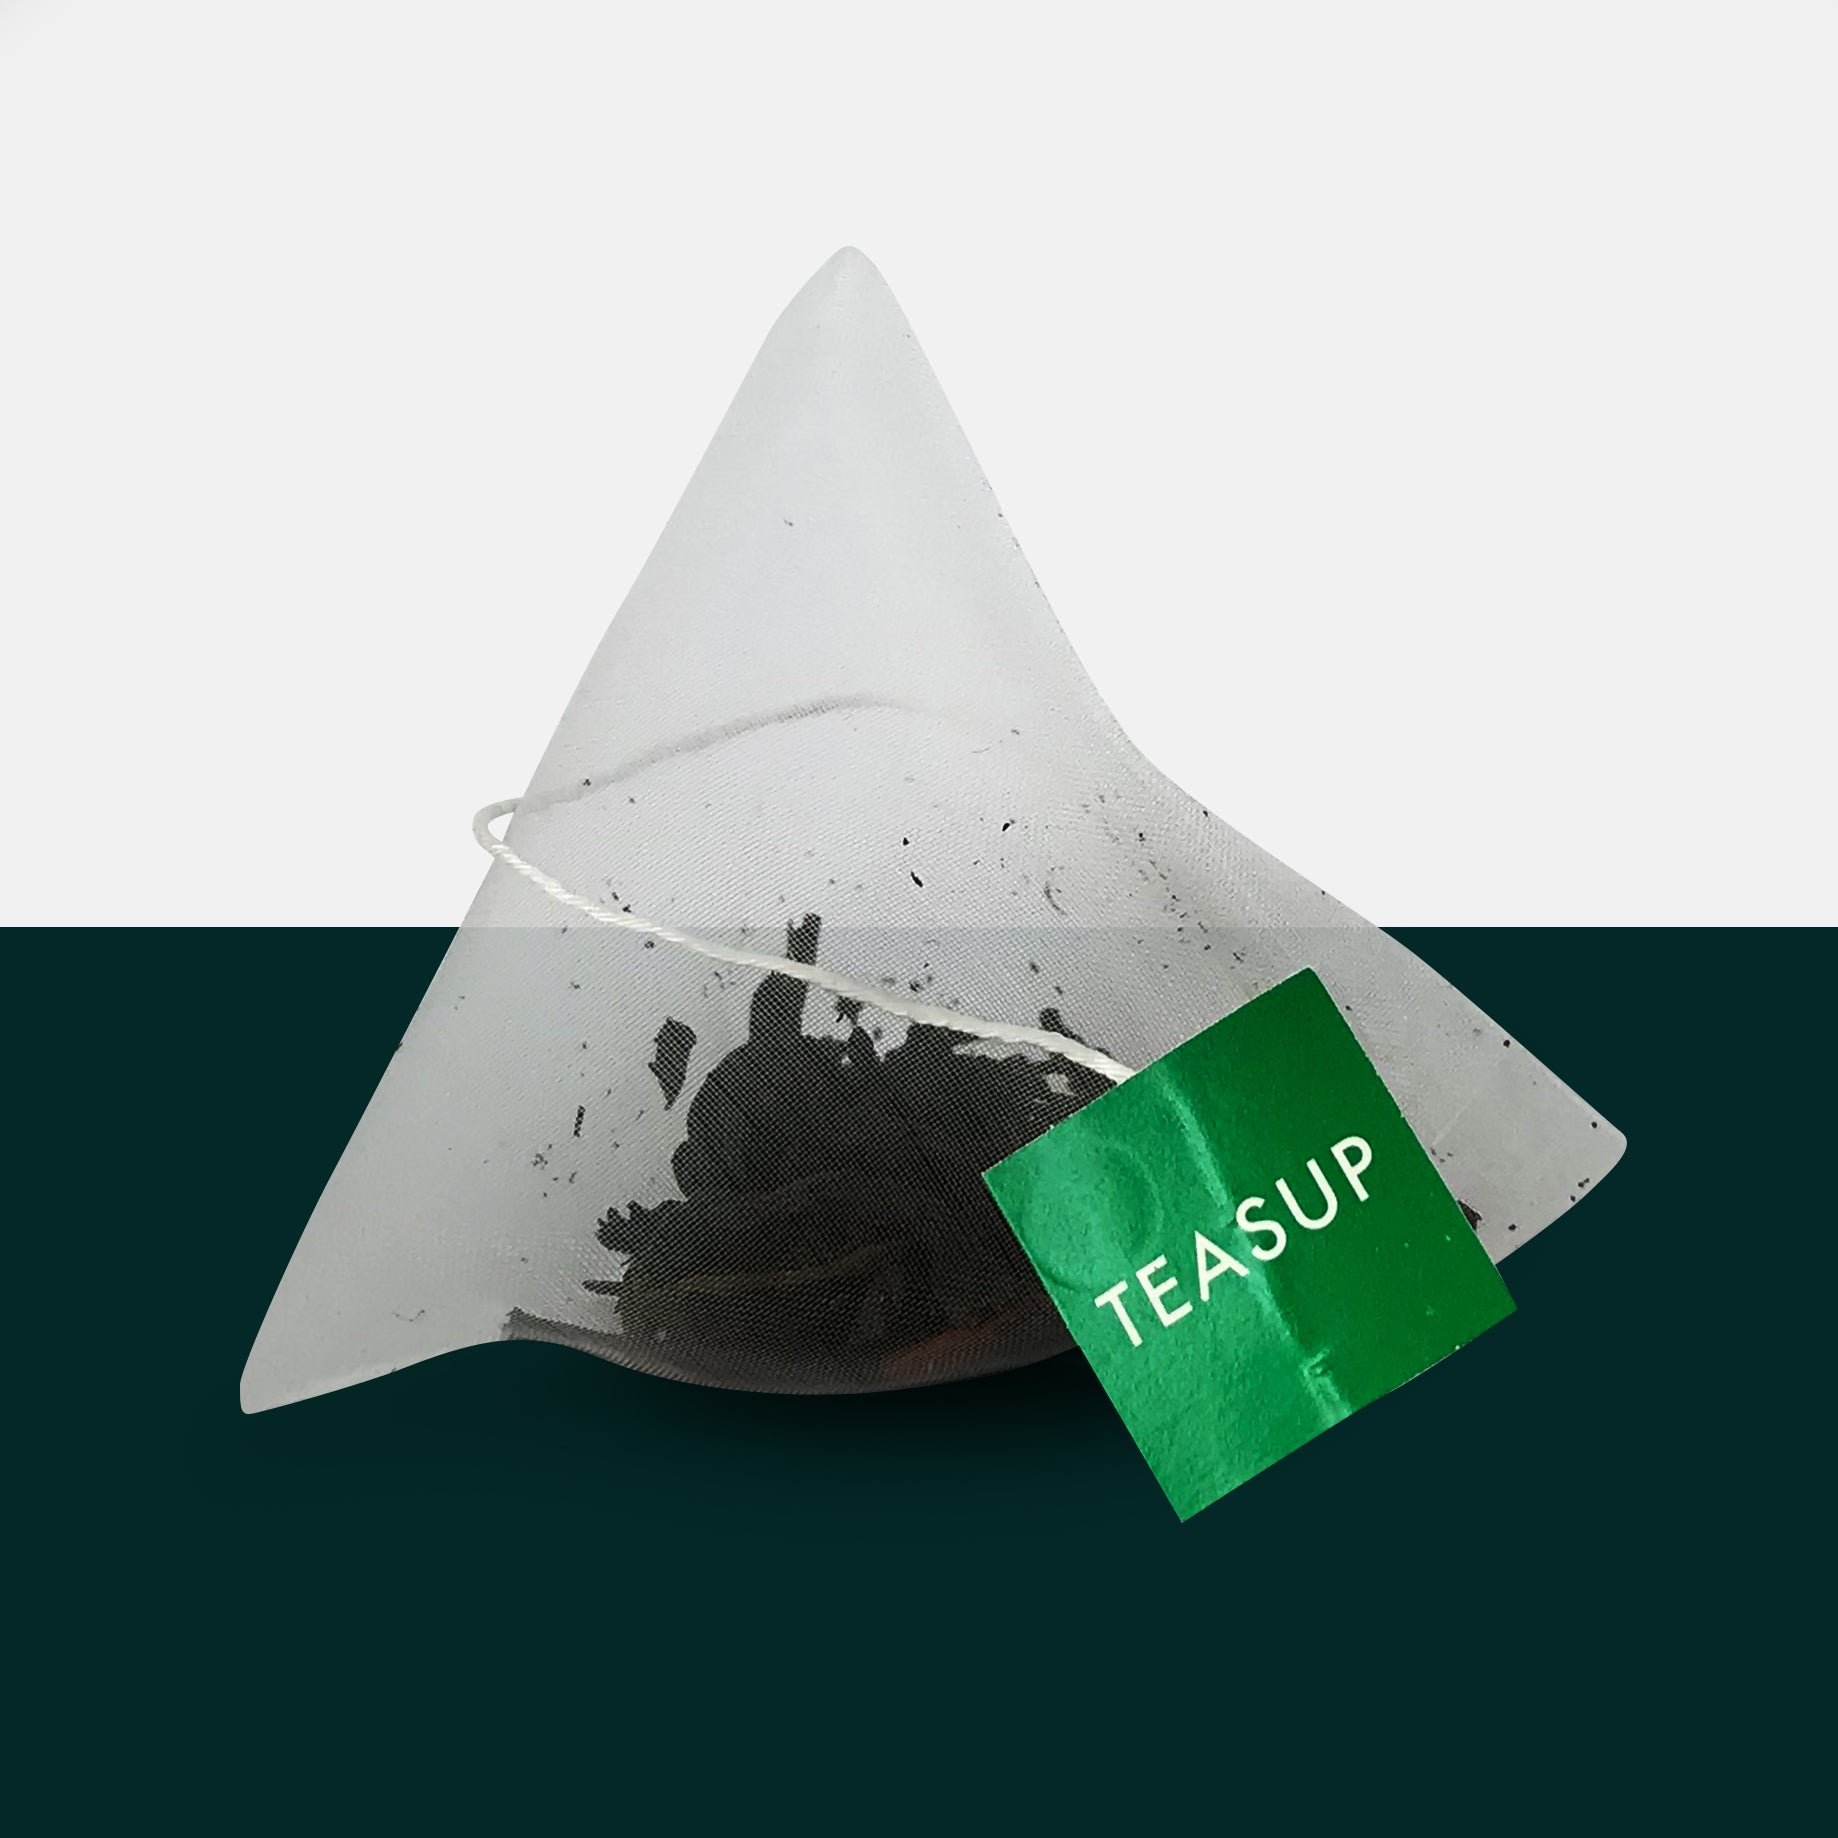 Malawian Smoked Tea in a Biodegradable Pyramid Tea Bag by Teasup